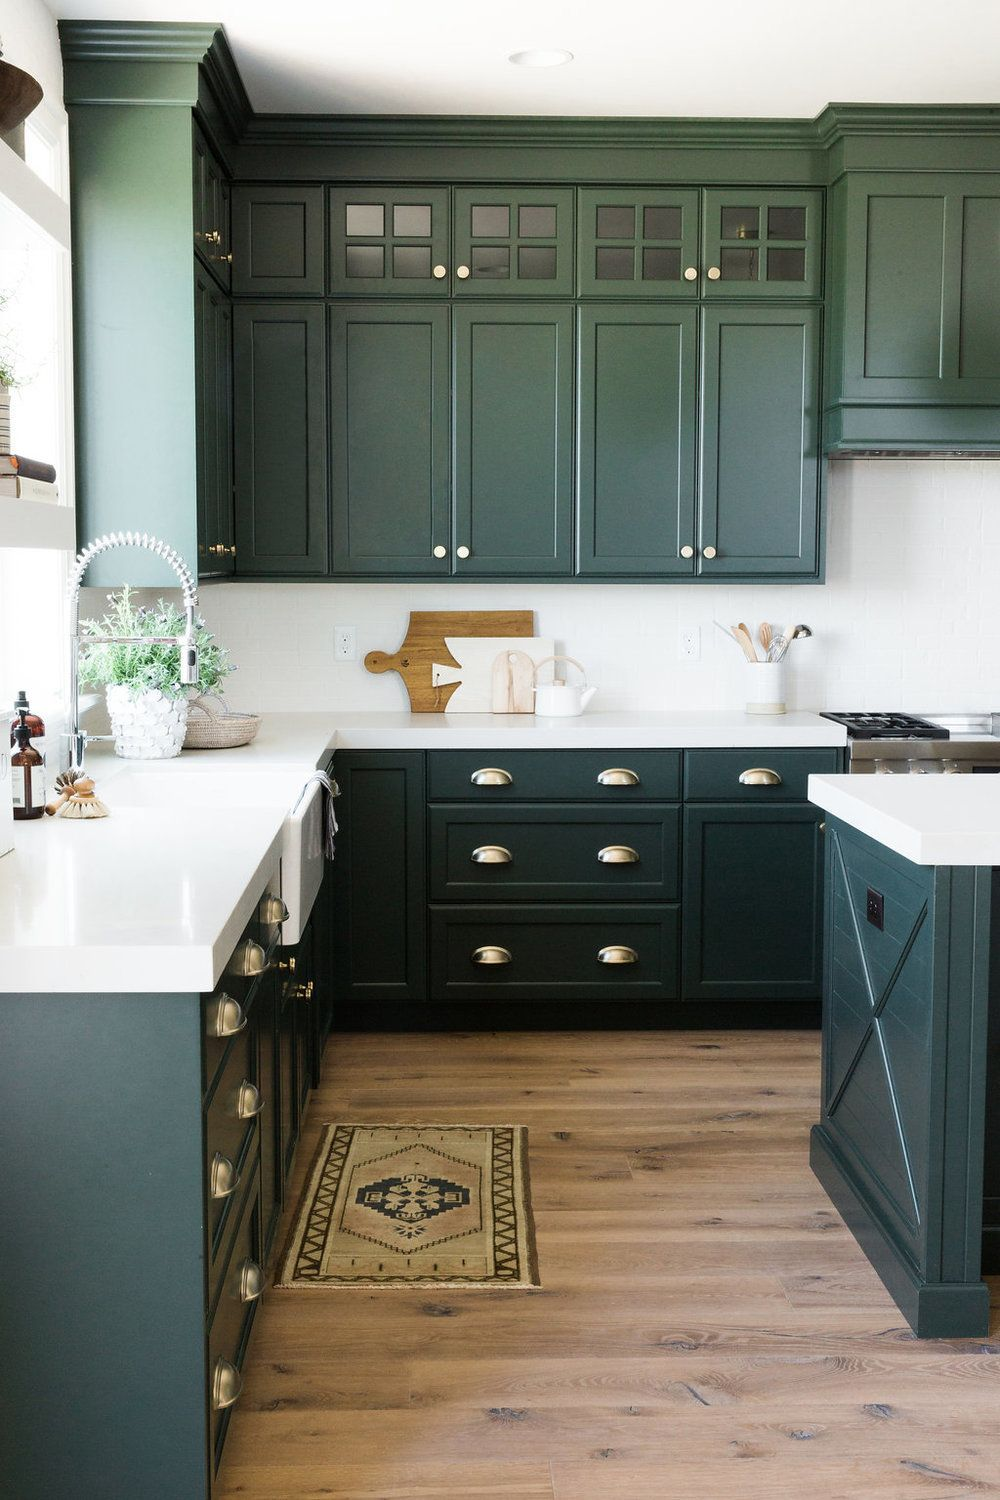 Green Kitchen Cabinets Make Us Feel Comfortable Nature S Dominant Color Green Has A Soo Kitchen Cabinet Inspiration Dark Green Kitchen Green Kitchen Cabinets